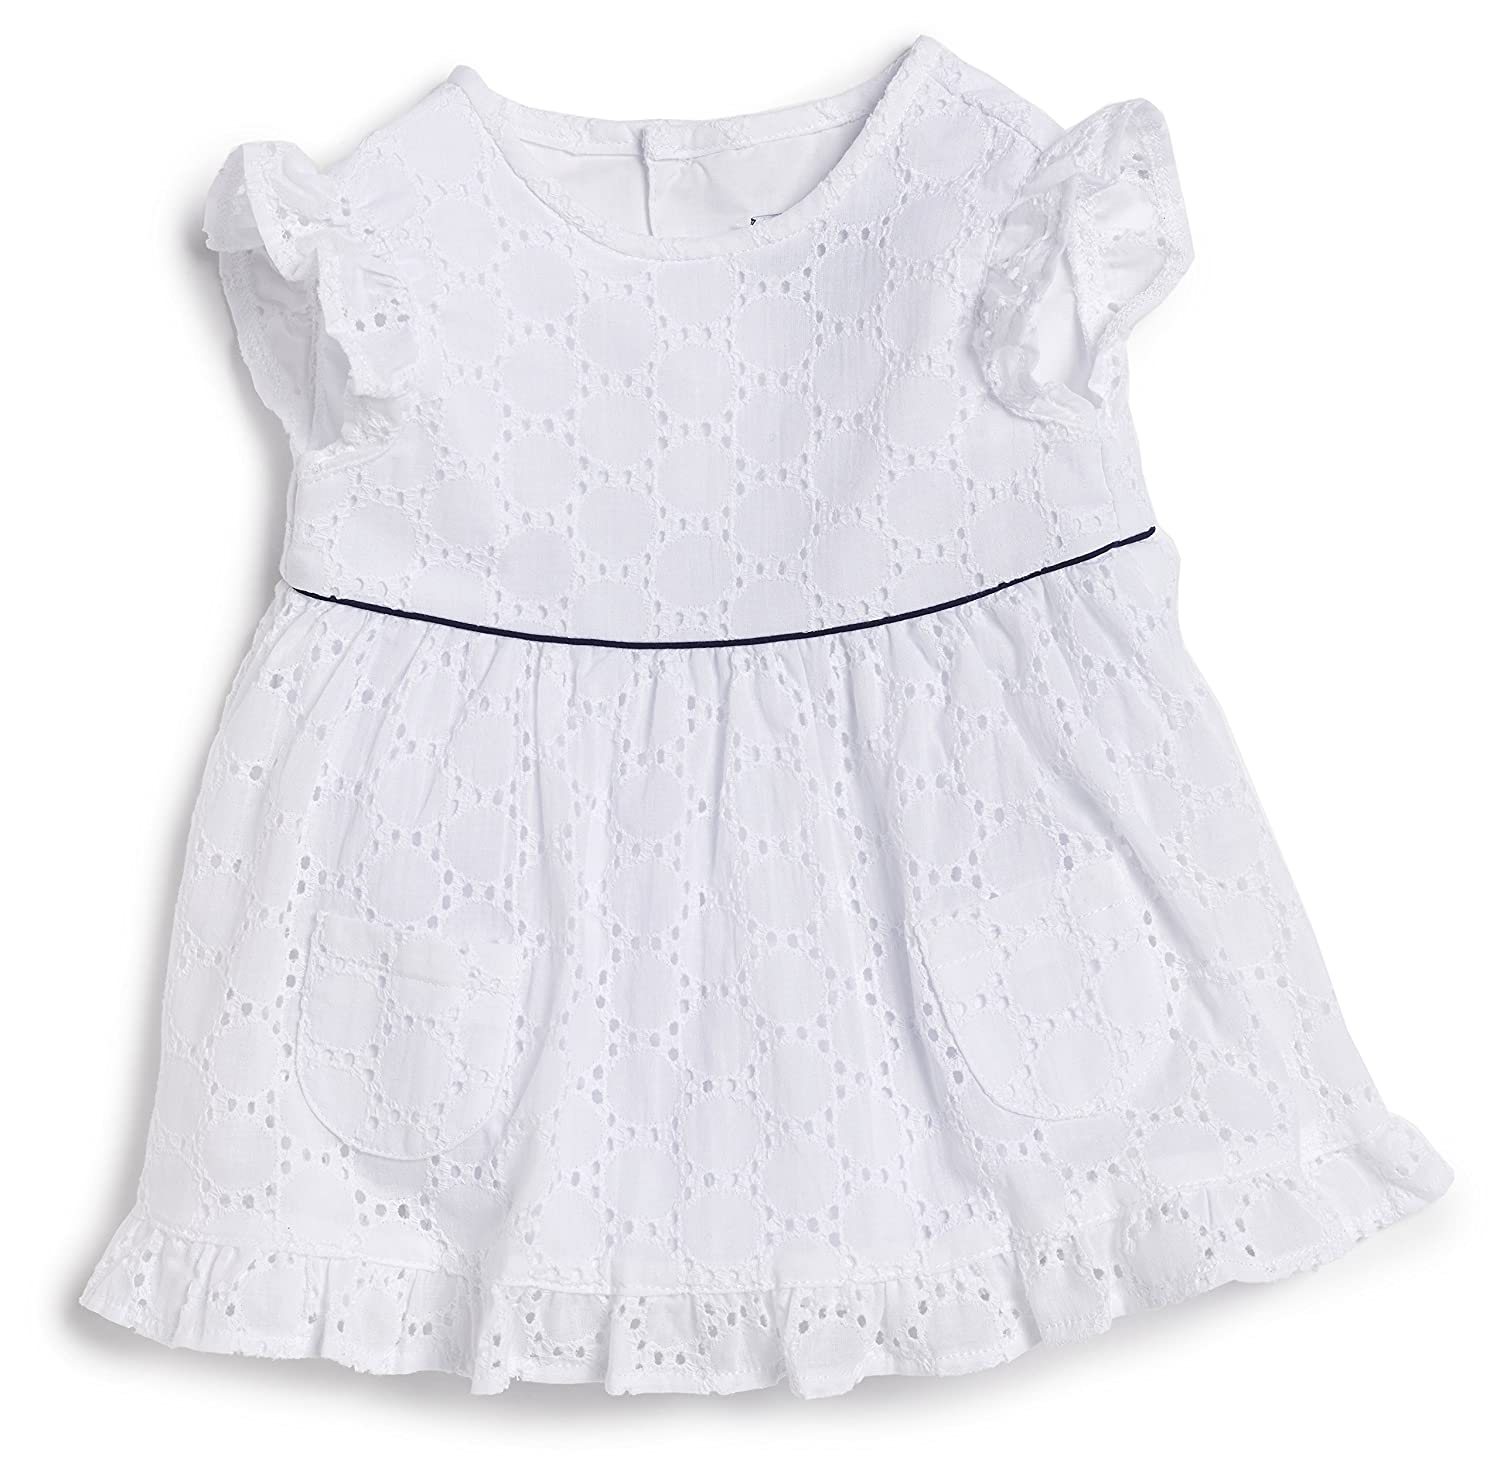 Busy Bees White Embroidered Dress